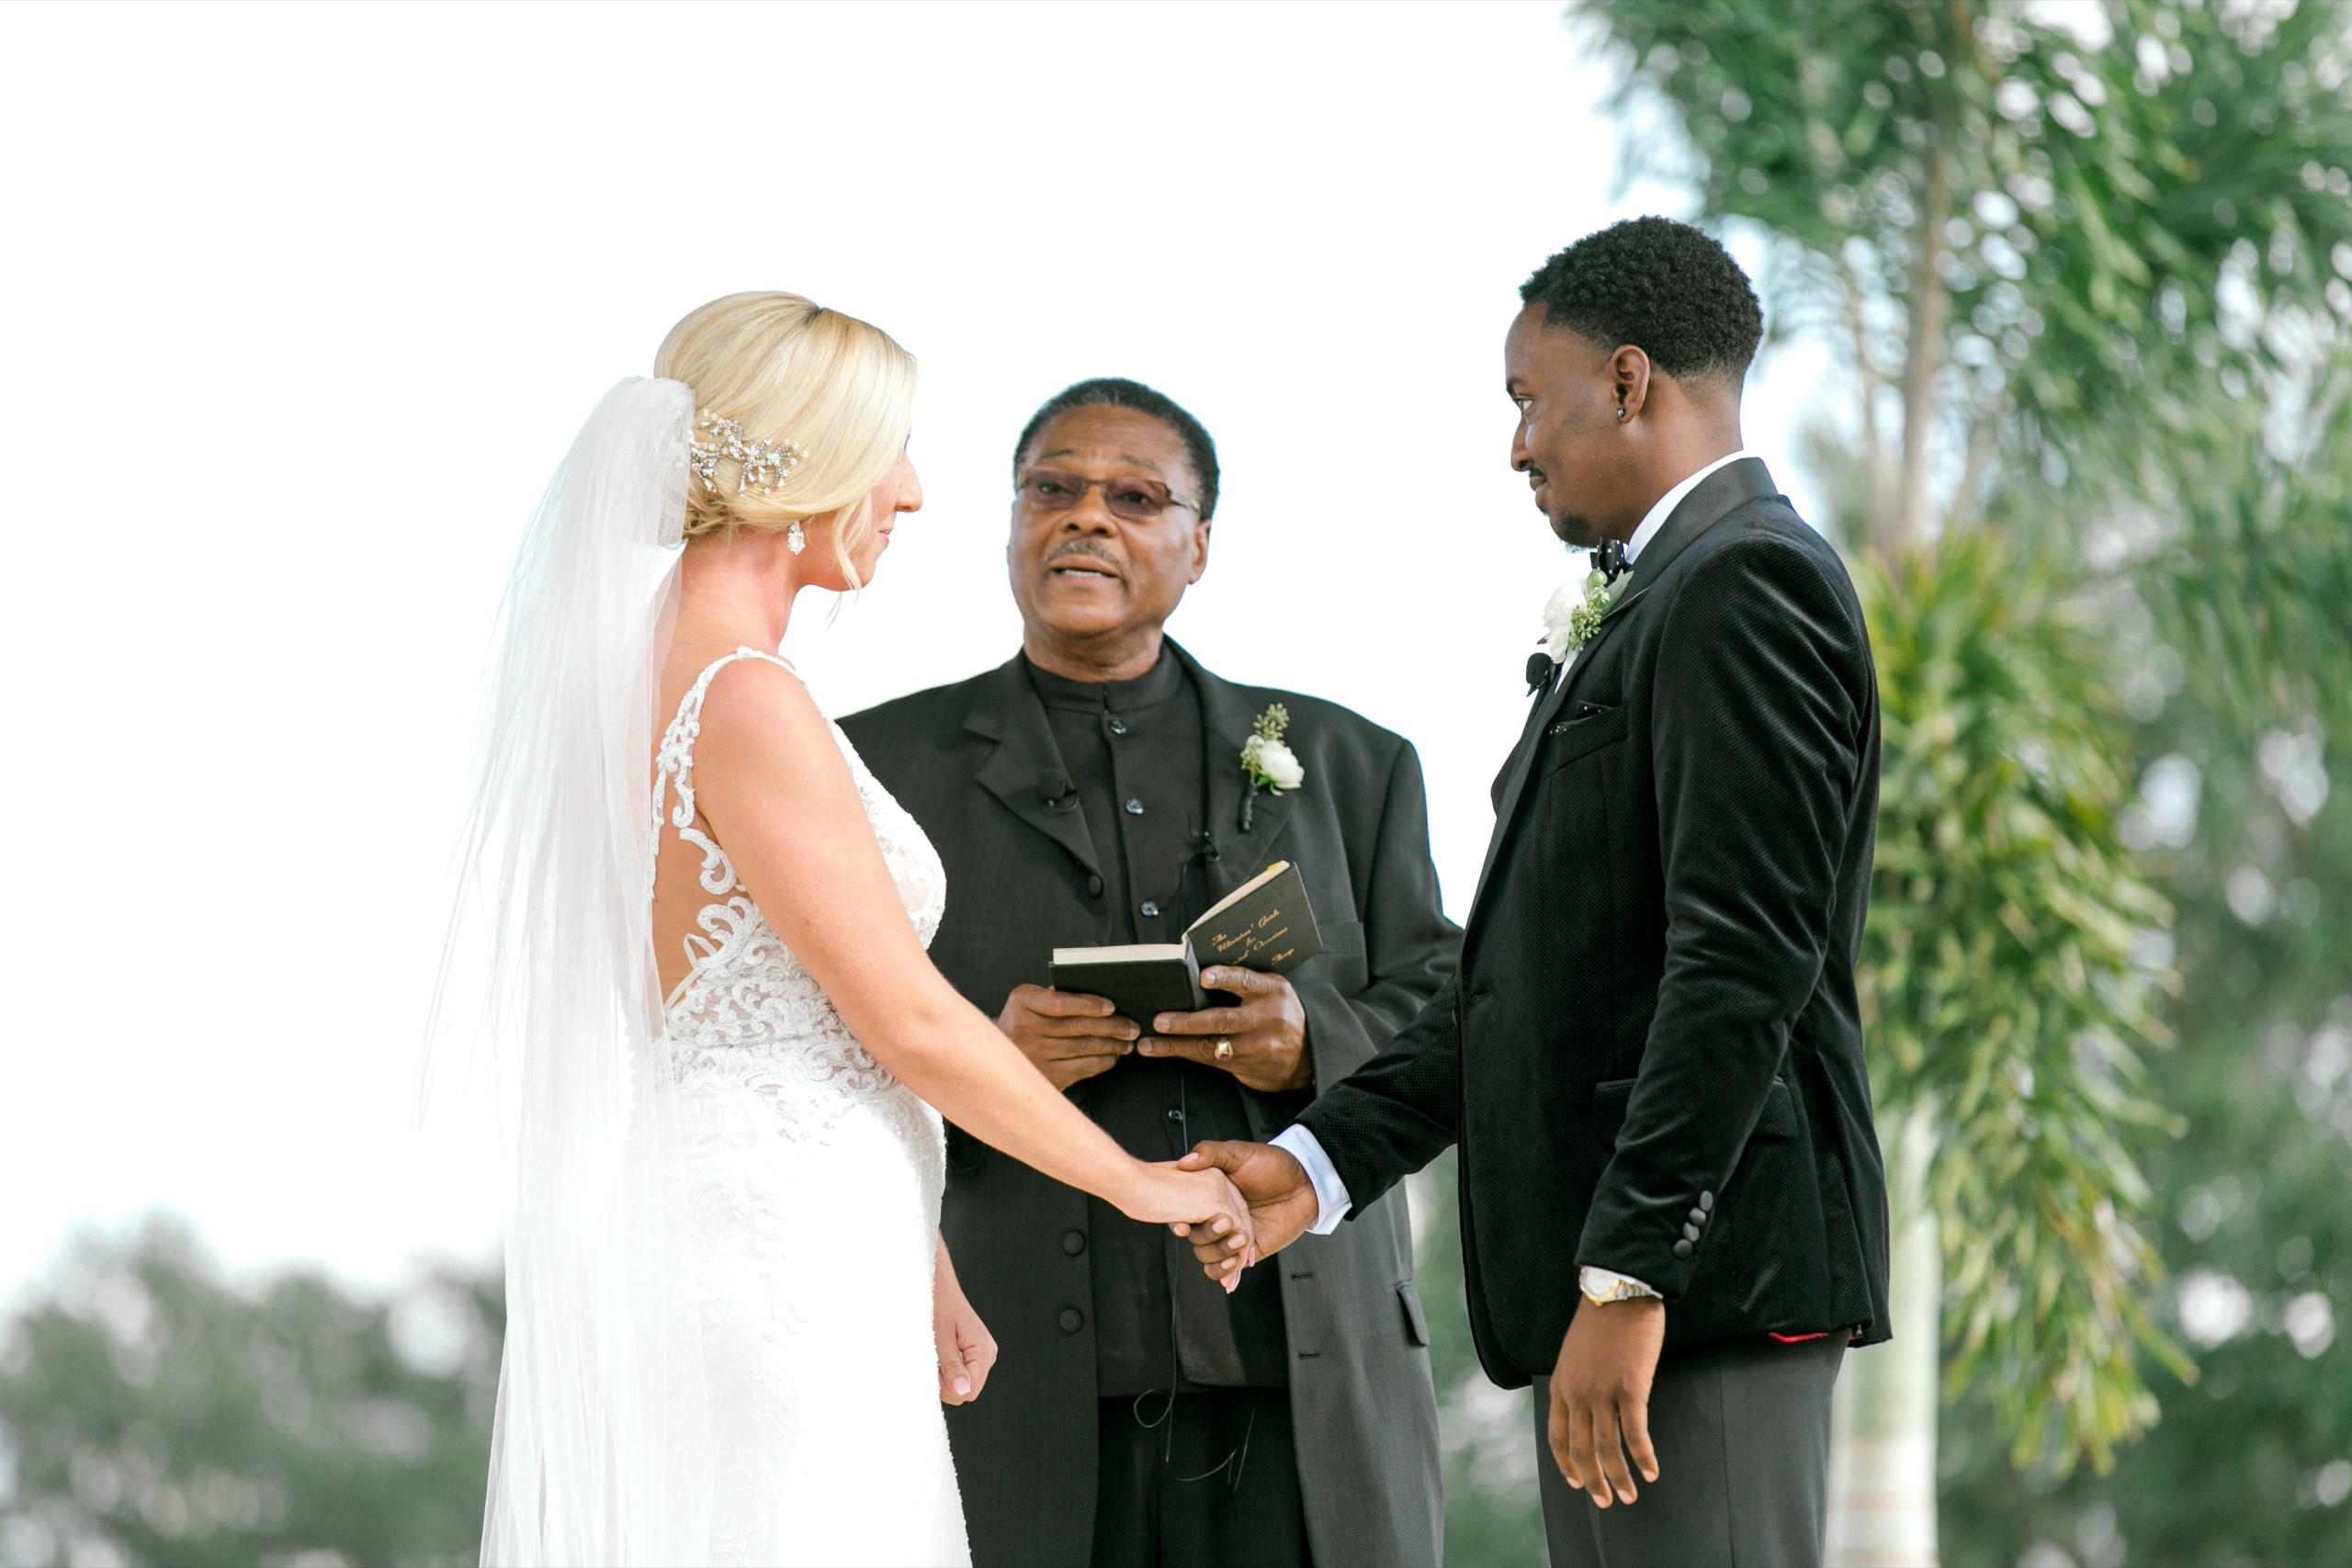 Today's Couples vs. Wedding Traditions and Customs | Analyzing